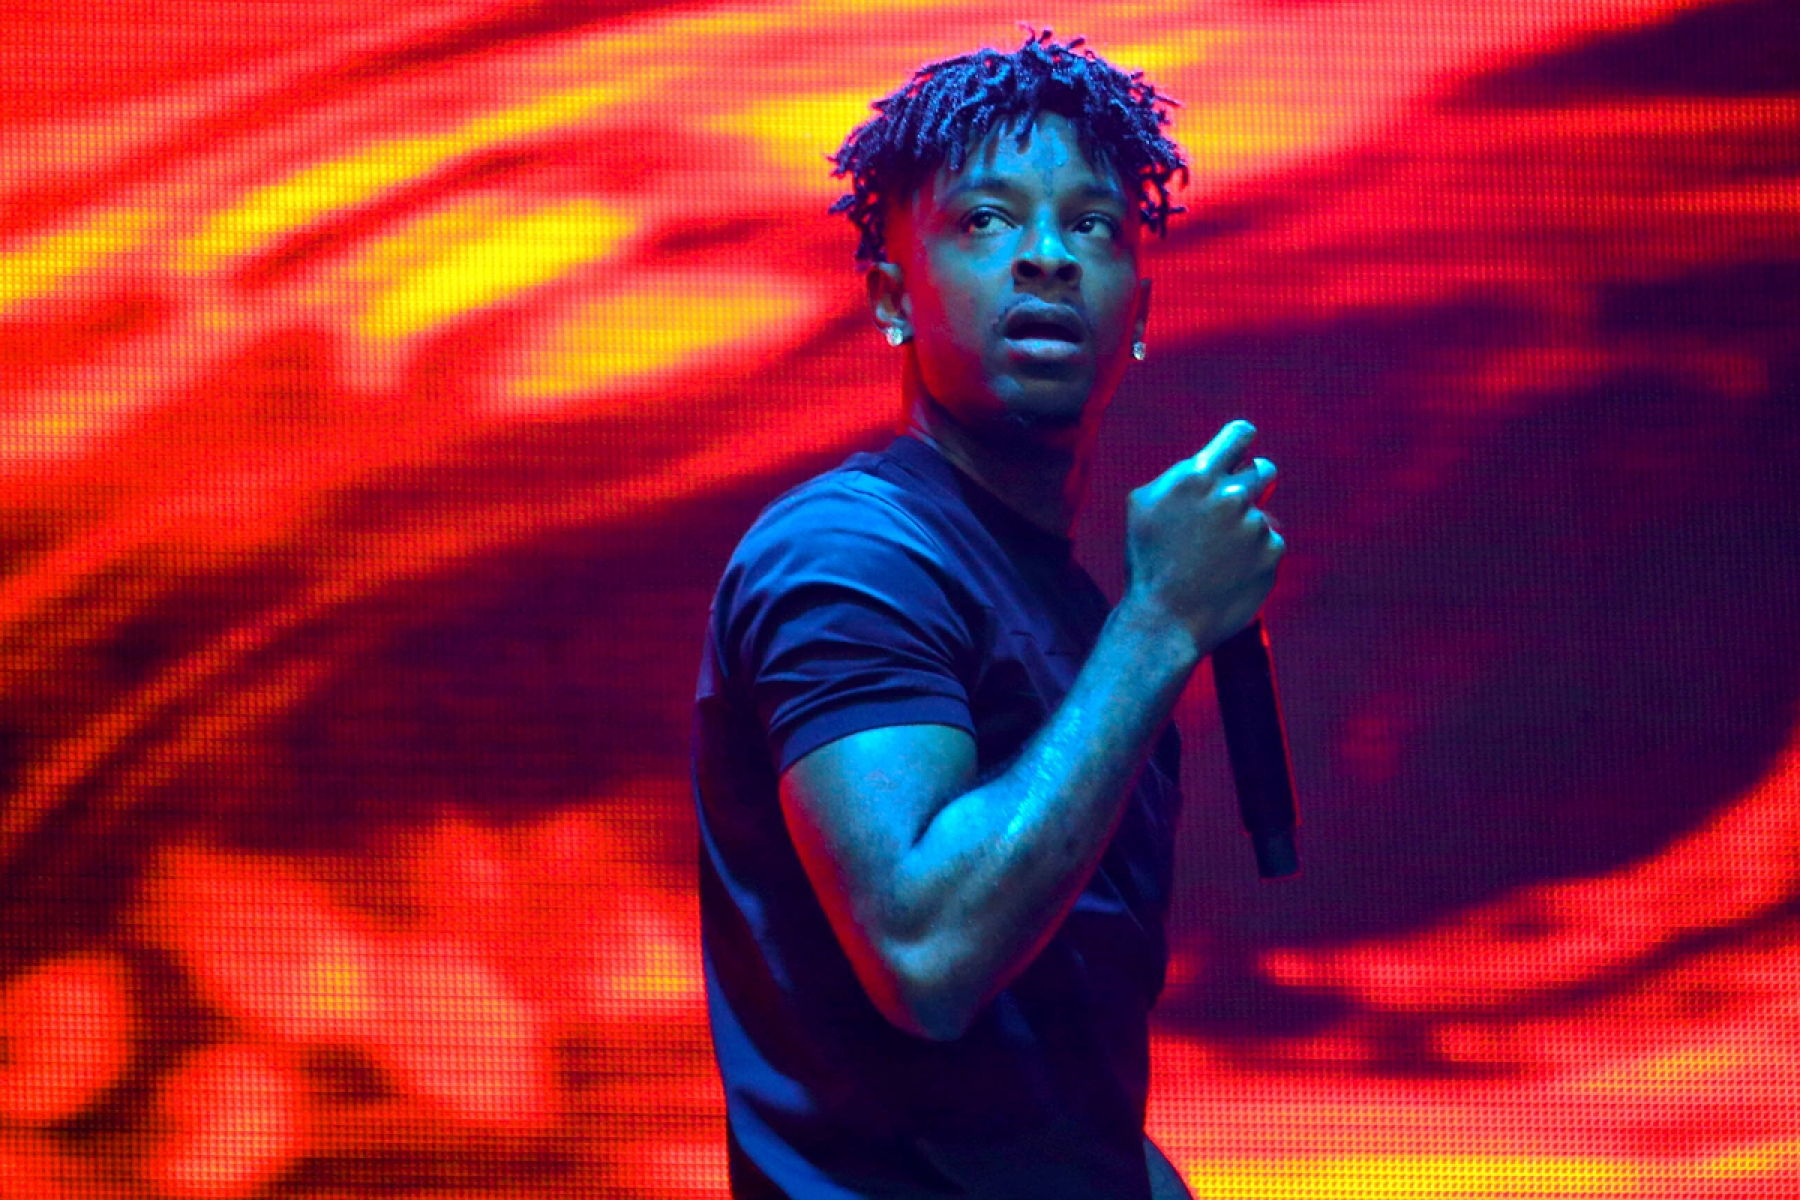 21 savage releases summer walker collaboration secret rolling stone https www rollingstone com music music news 21 savage summer walker secret 986060